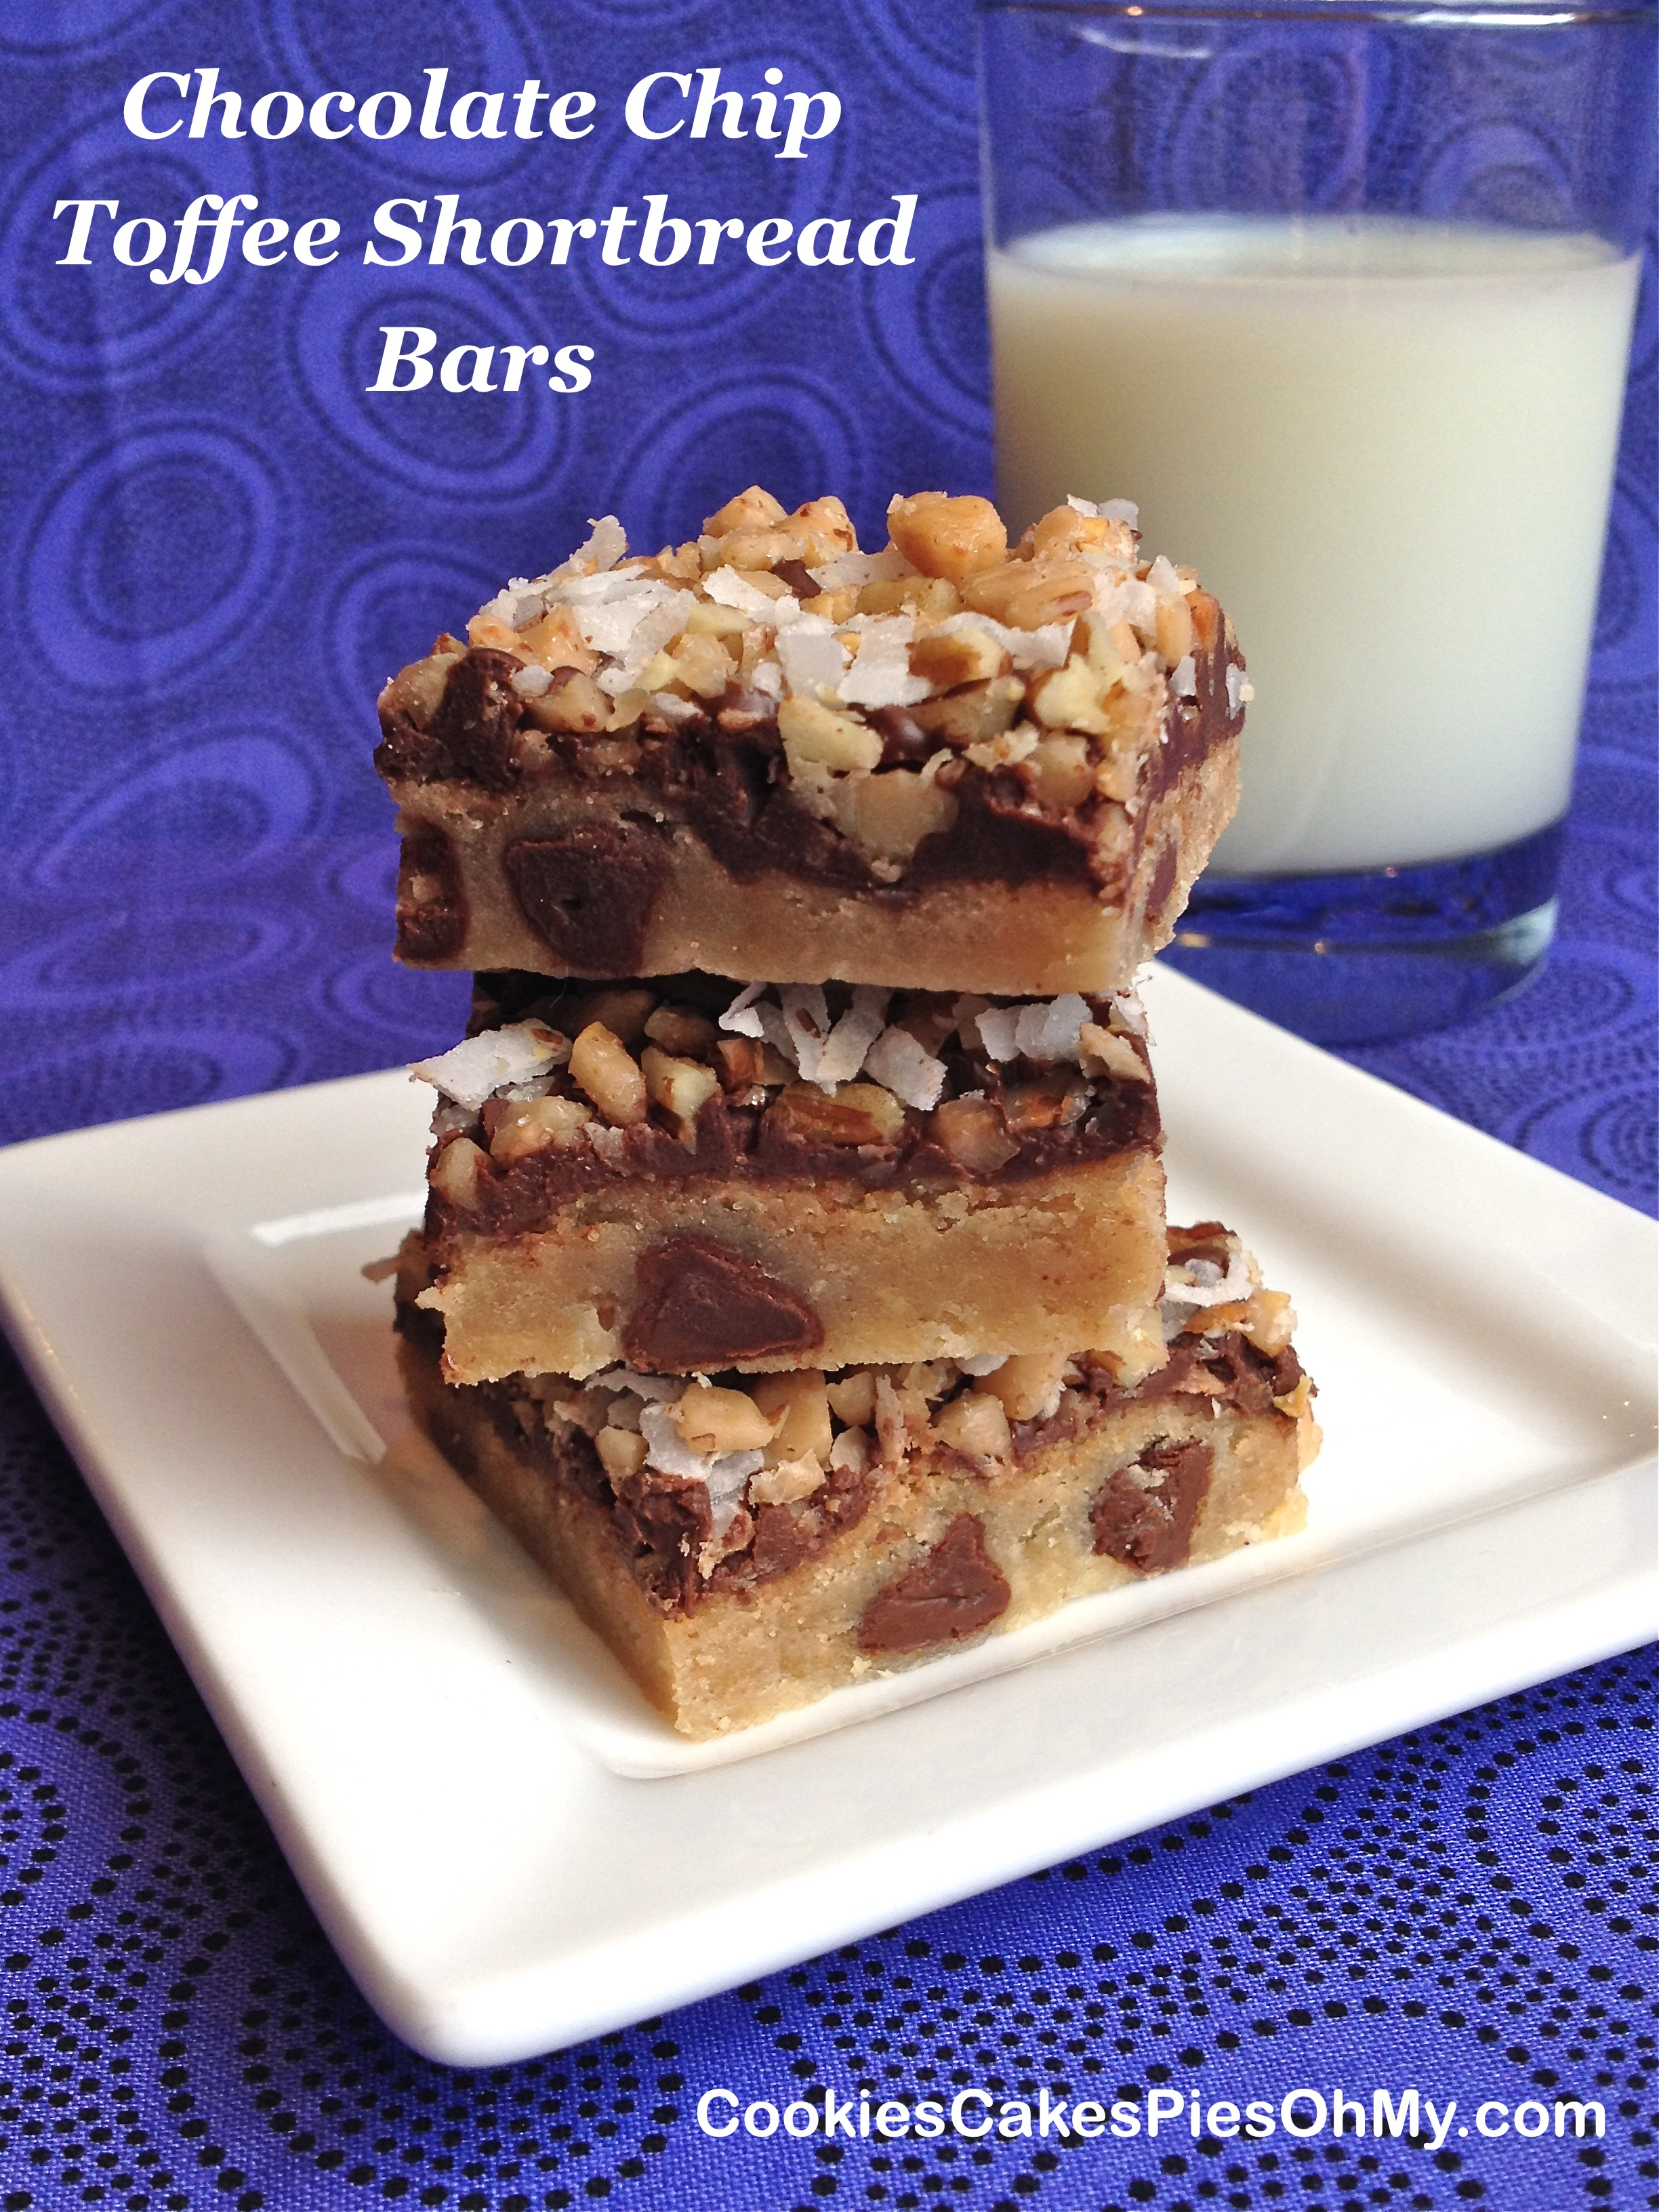 ... toffee pecan brown butter toffee pecan these are just a few of the